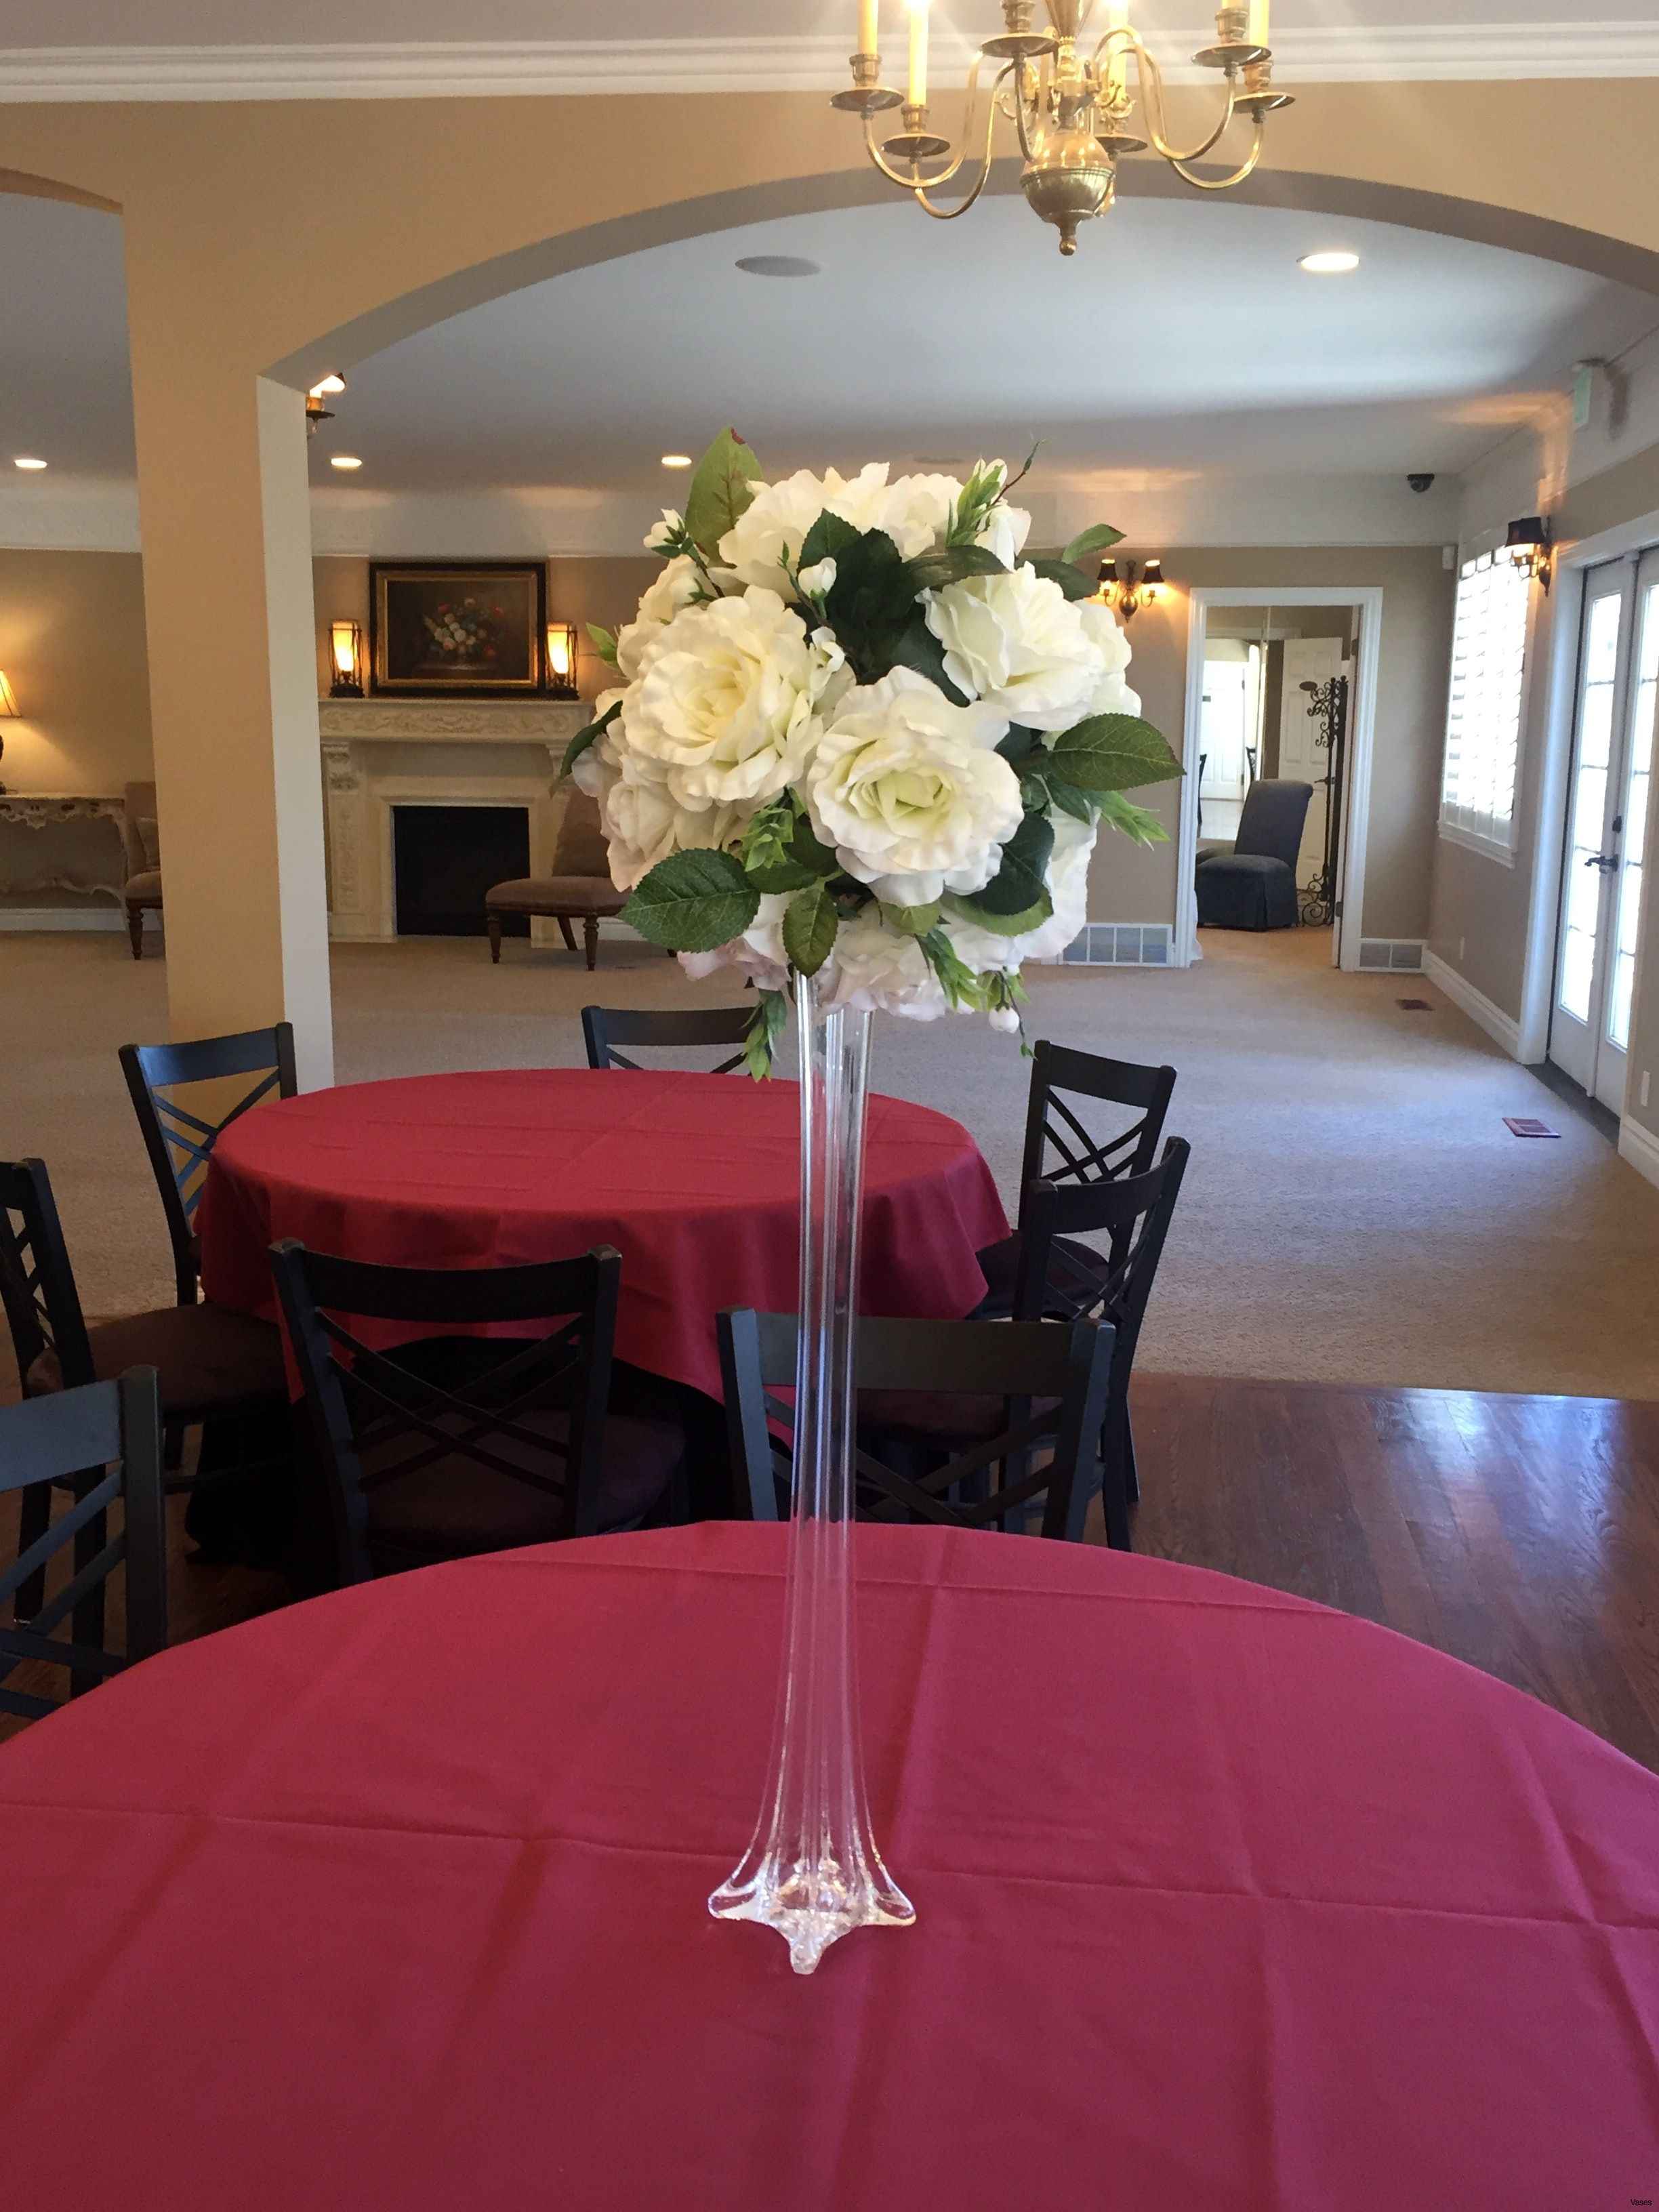 beautiful vases for sale of 24 tall vases for sale the weekly world in lovely wedding decoration rental